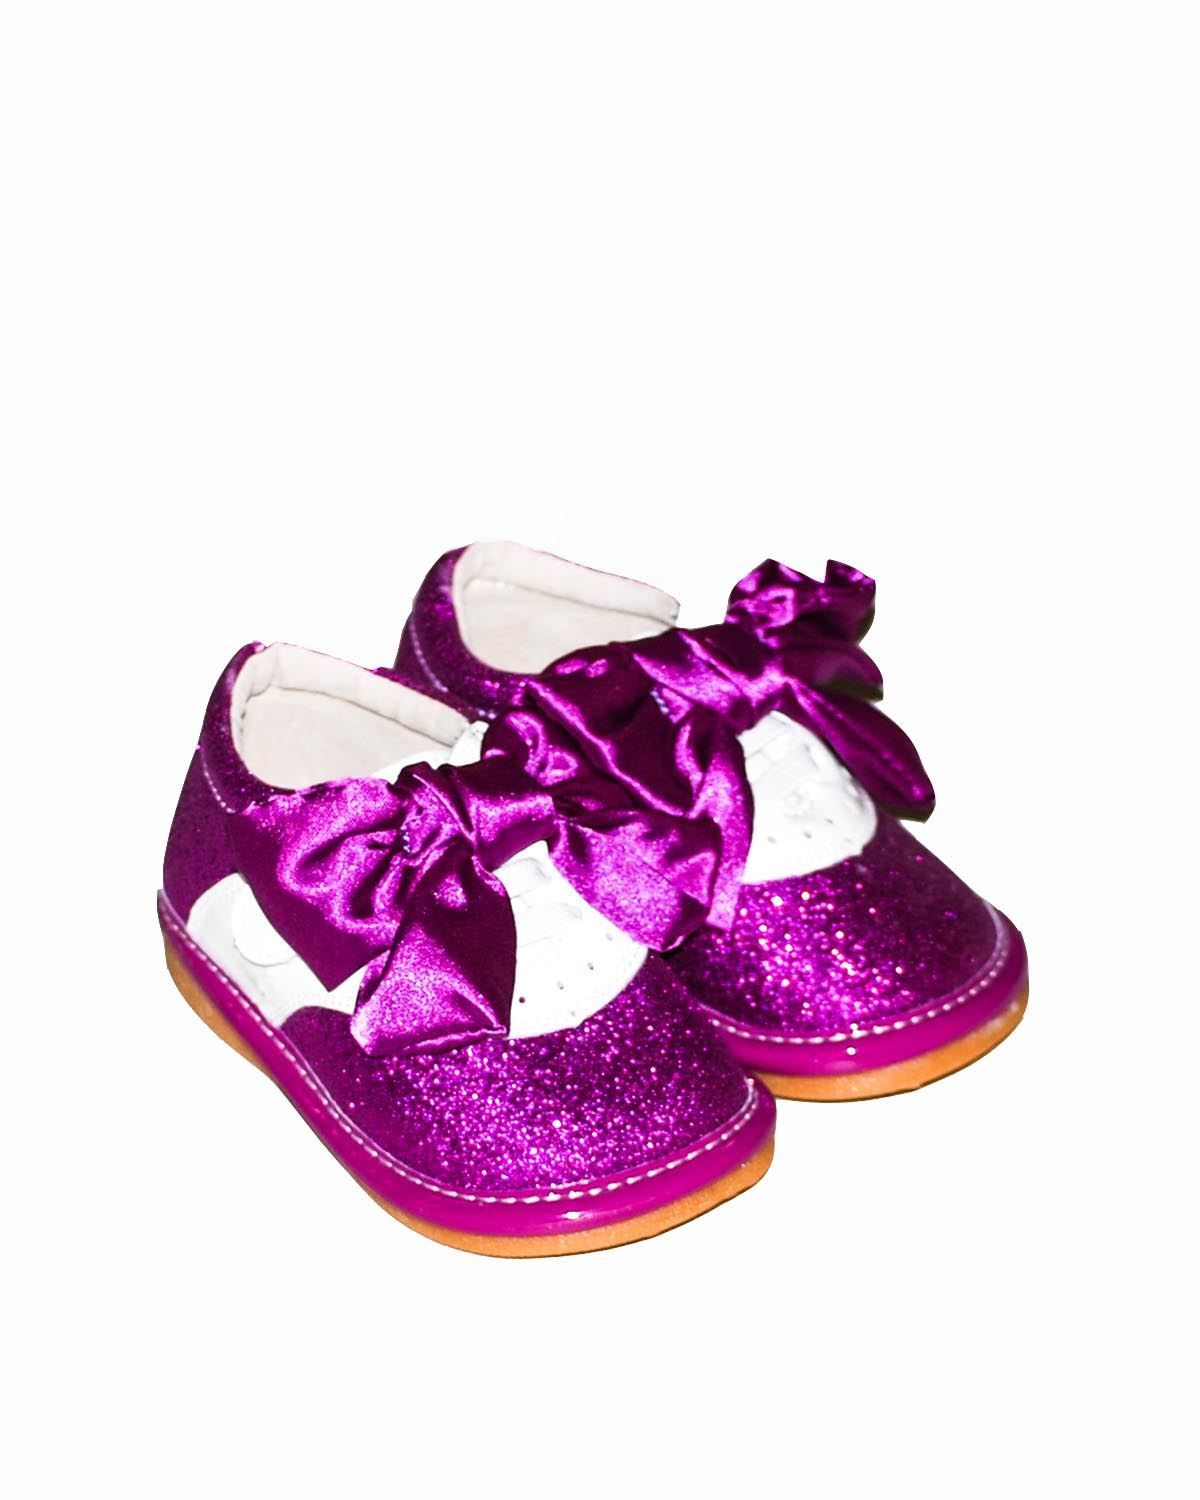 Hide Pram Shoes for $19 at Modnique. Start shopping now and save 53%. Flexible return policy, 24/7 client support, authenticity guaranteed